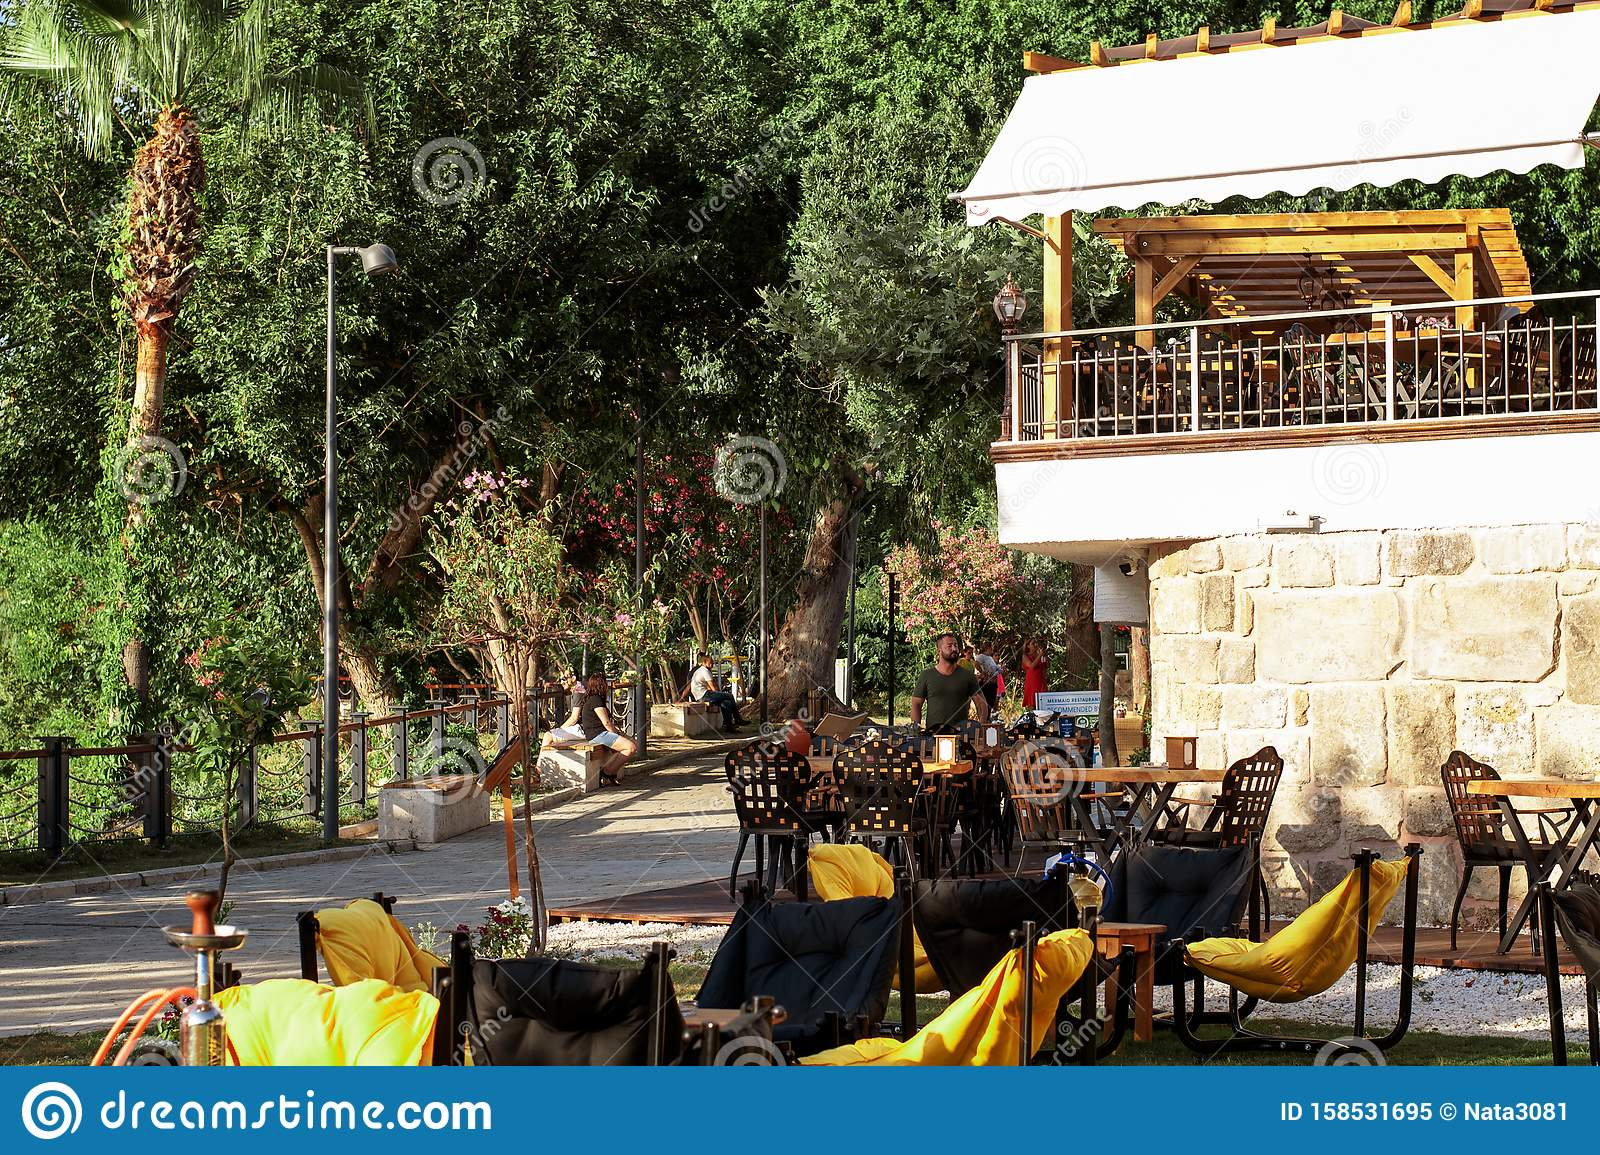 General View Of The Restaurant With A Summer Terrace In Summer A Menu Bar The Interior Of The Summer Cafe Summer Rest Stock Image Image Of Garden Cafe 158531695